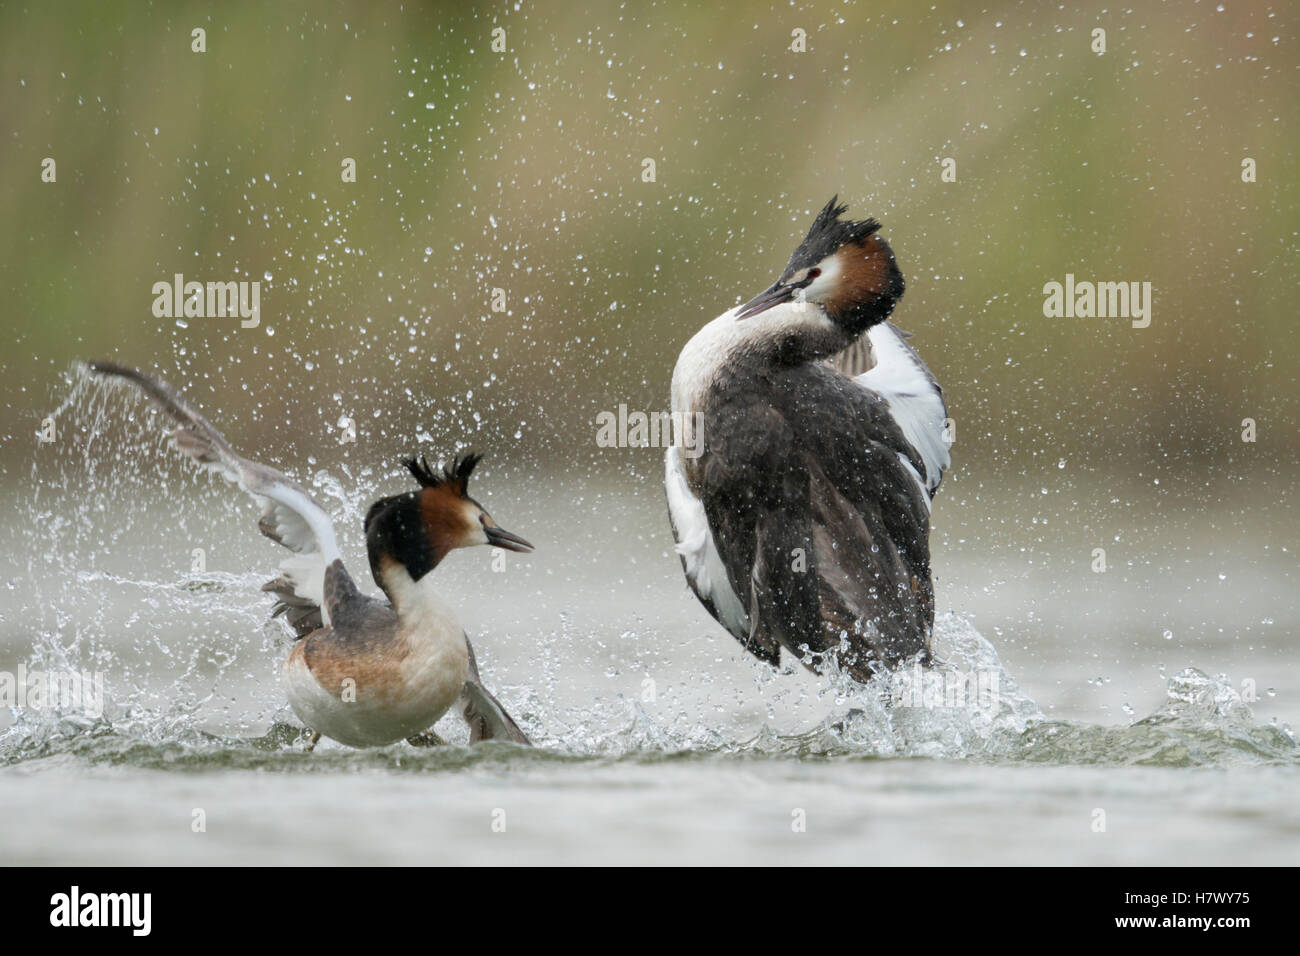 Great Crested Grebes ( Podiceps cristatus ), rivals, territorial behavior during mating season, in hard fight, fighting, - Stock Image